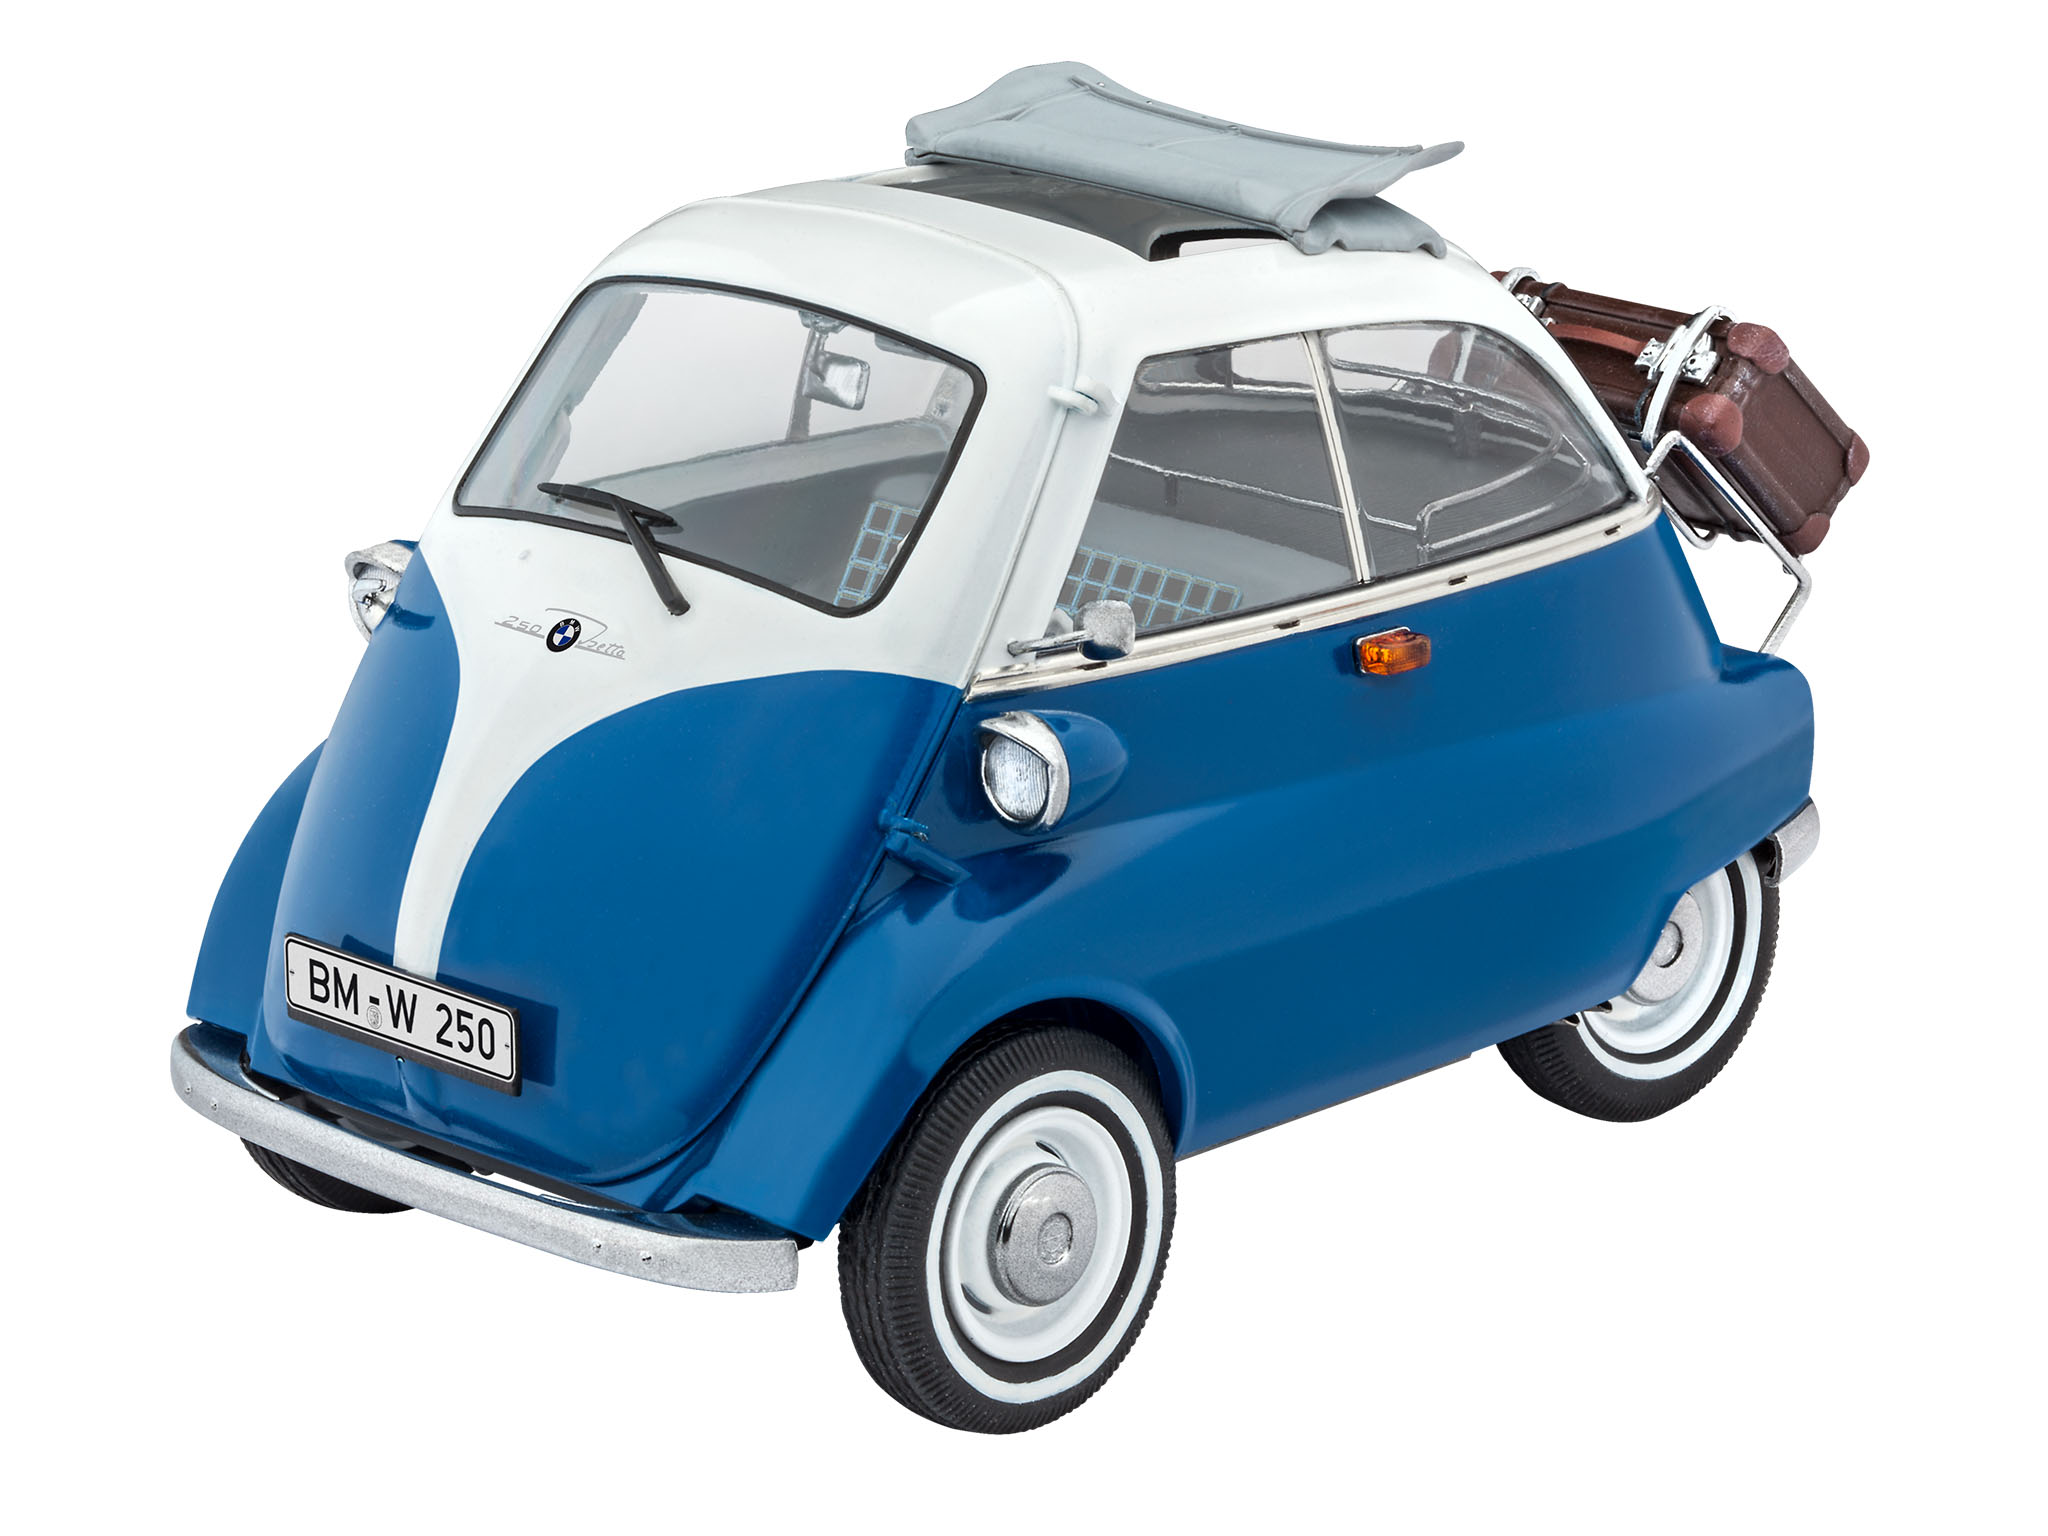 rc car parts and accessories with Bmw Isetta 250 on 2 4G RC Drone With 6 Axis Gyro Camera REH67392 likewise Ko Propo Electronic Switch in addition Lee Cooper Sneakers Stride Nationwide Delivery additionally Mens Handmade Leather Slippers together with 107244.